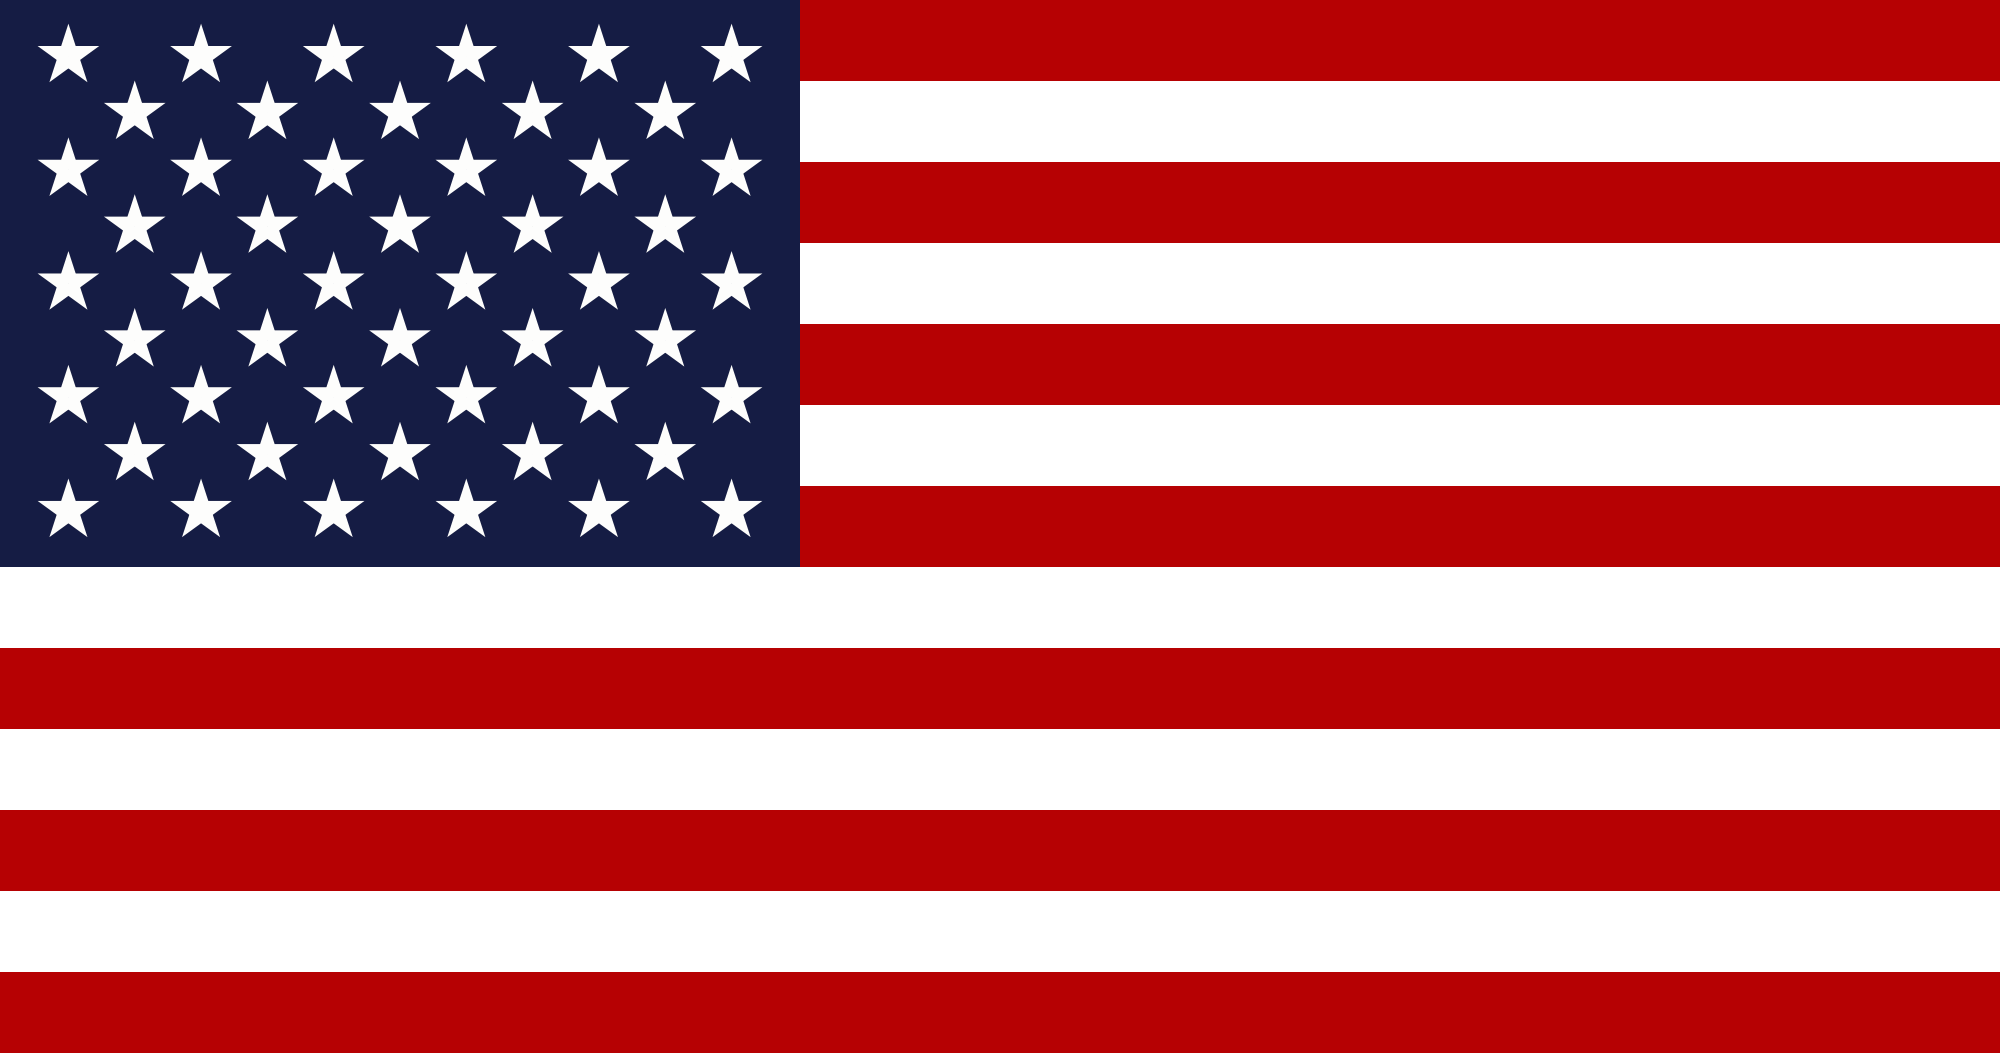 File:Flag of the United States Recolored.png.